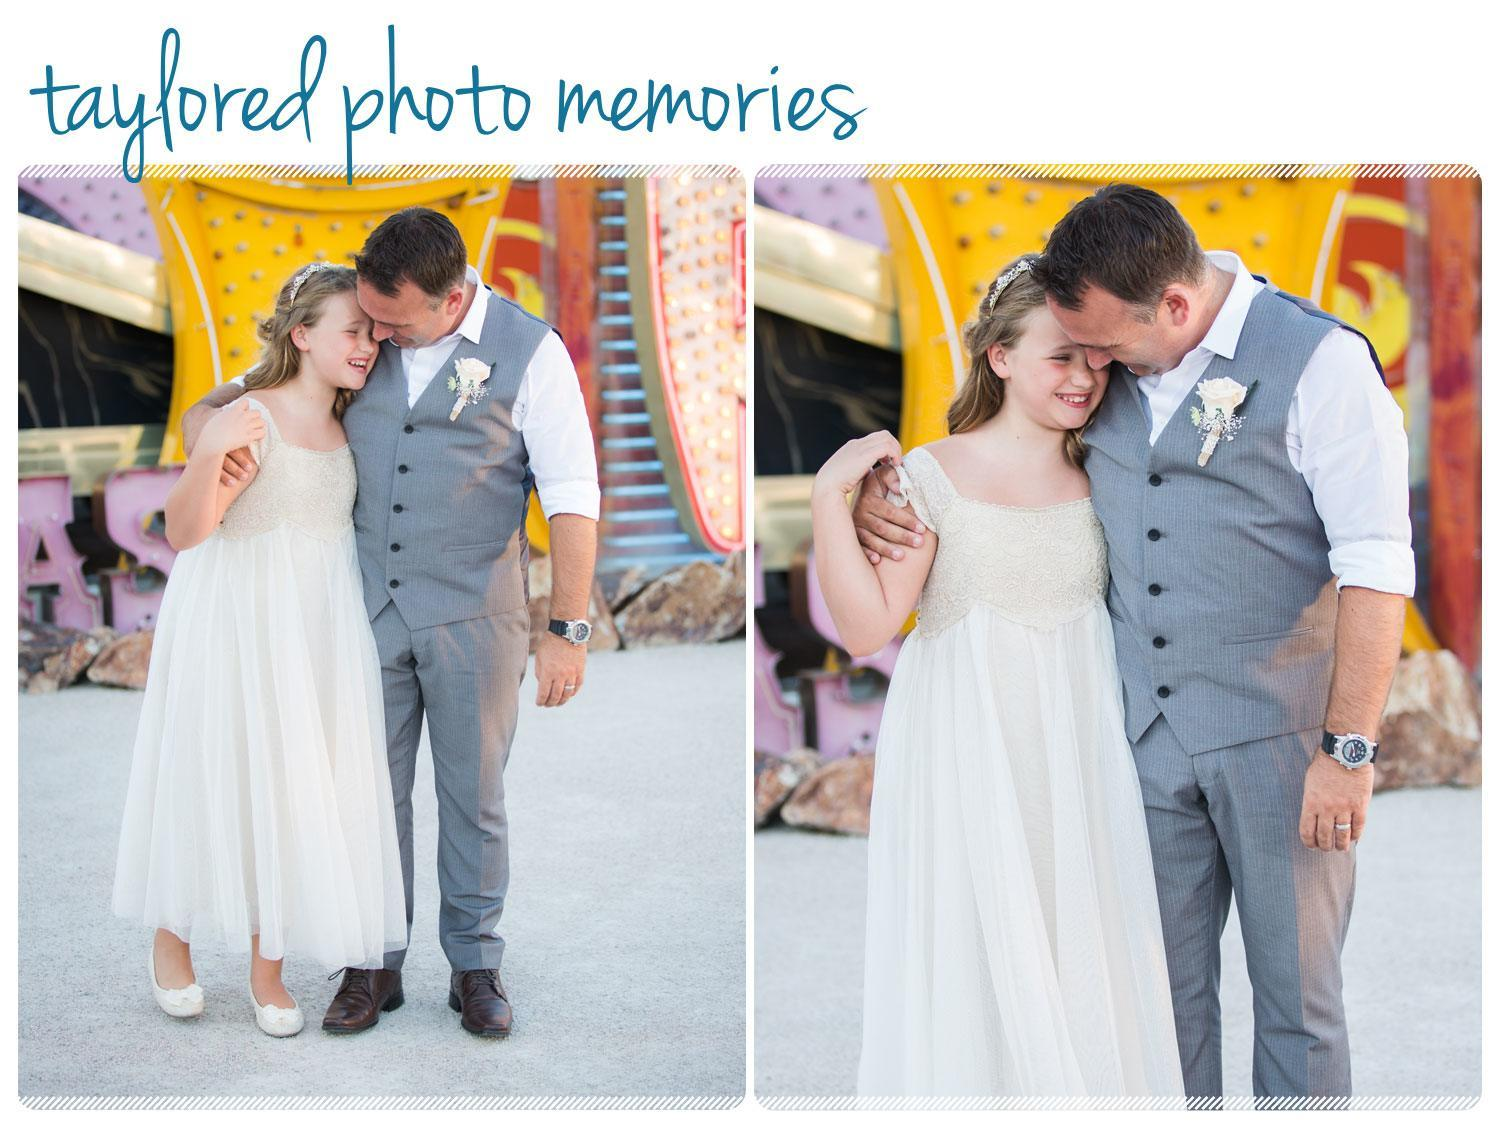 Quick Little White Wedding Chapel Wedding, Las Vegas Wedding Photographer